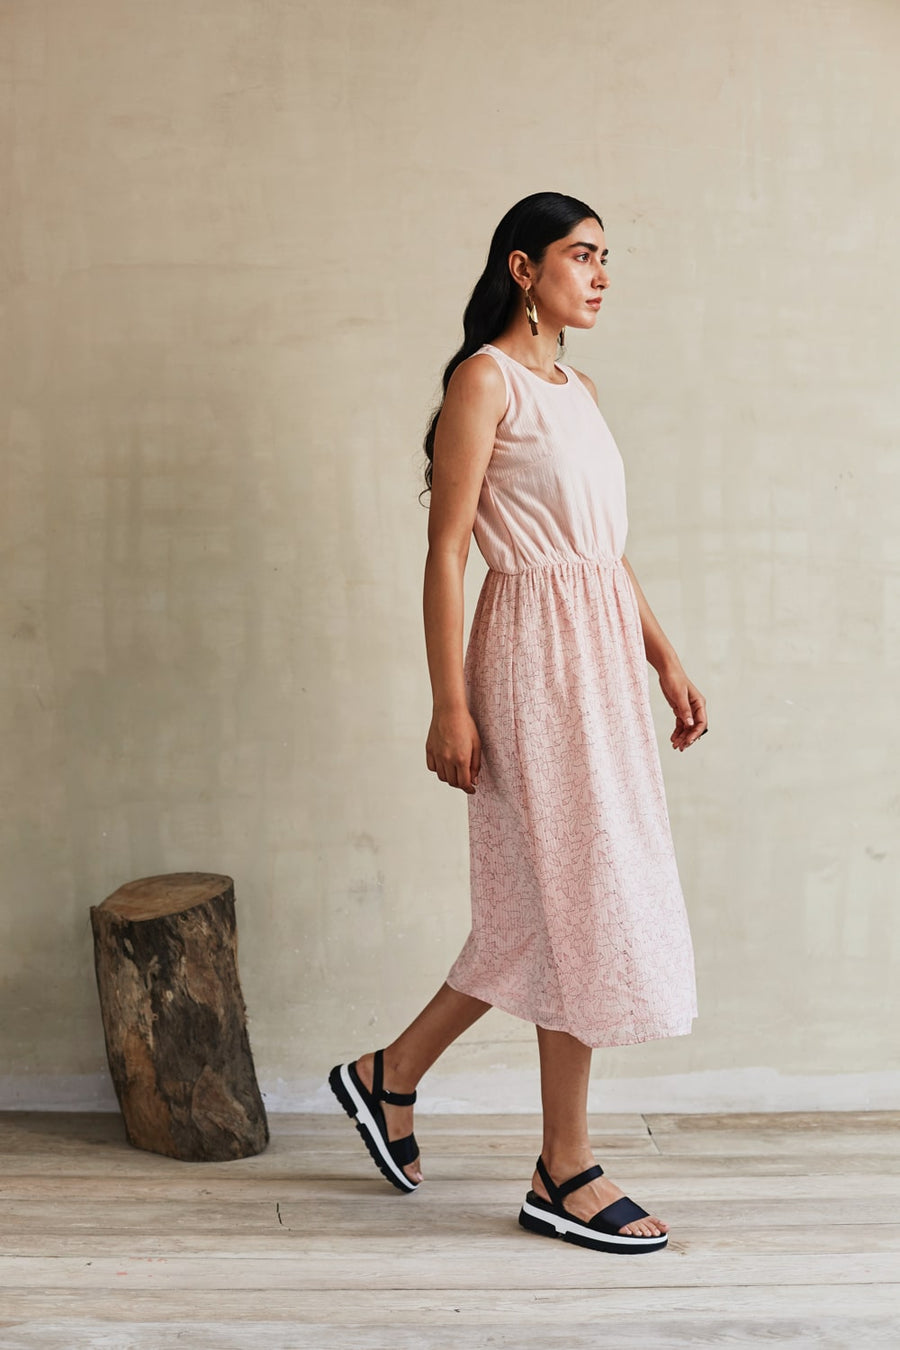 Girls Day Out Casual Dress - Ethical made fashion - onlyethikal